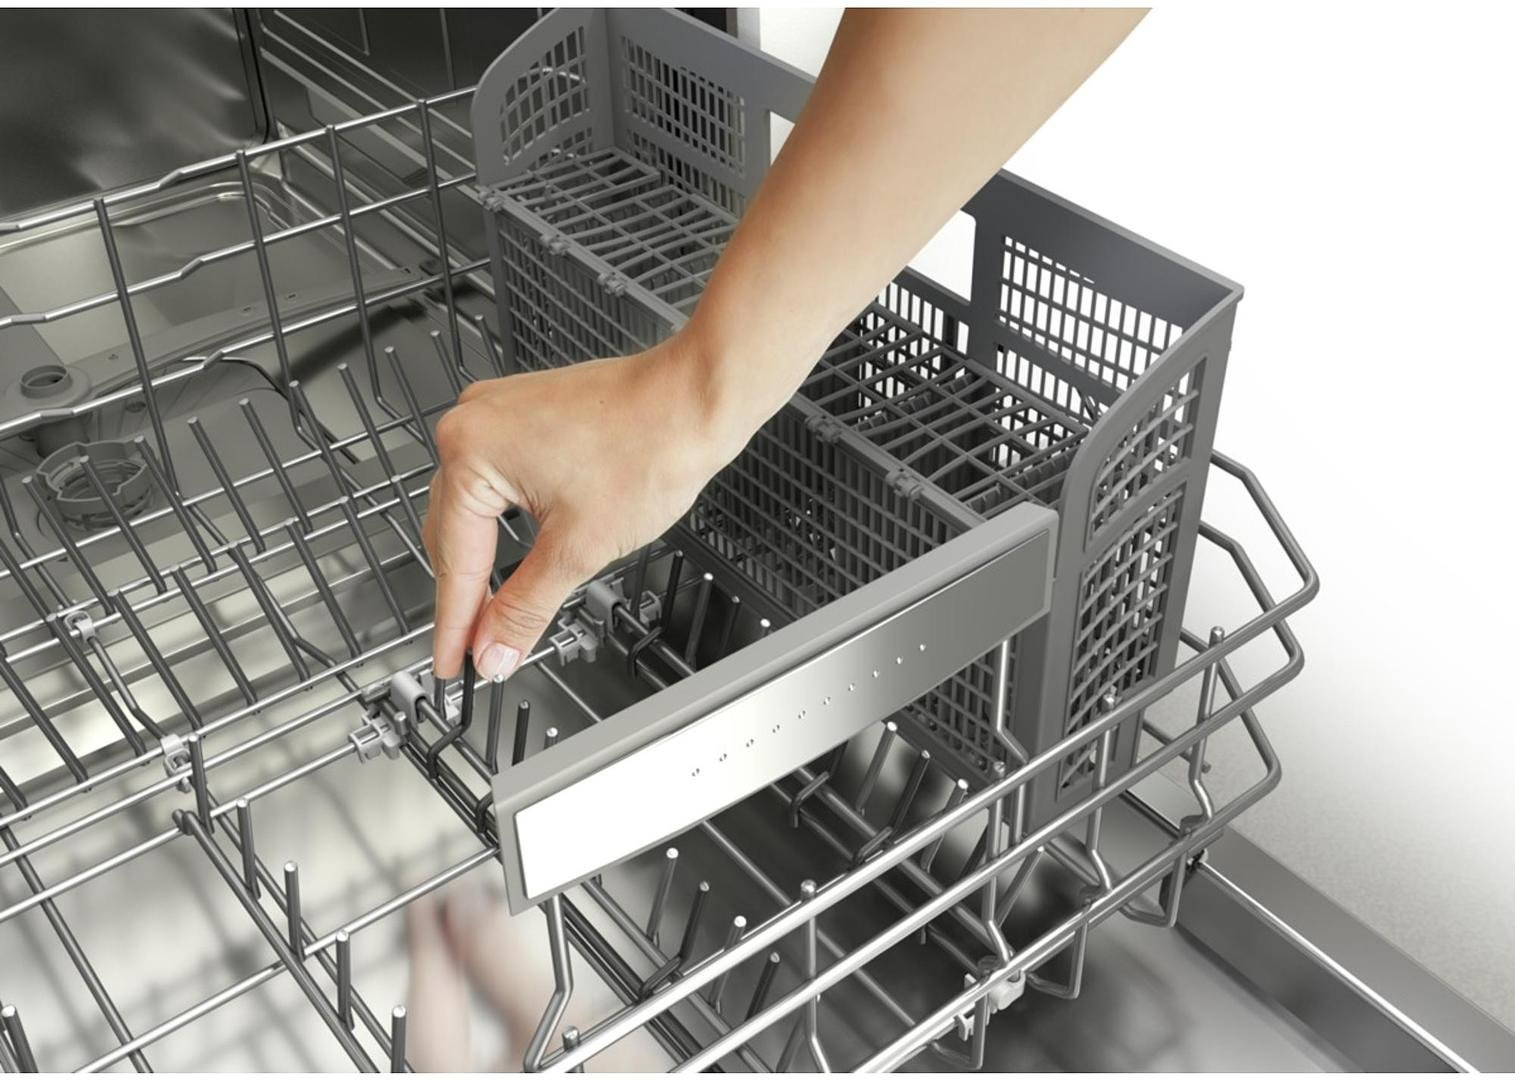 Bosch SHPM78W54N 800 Series 24 Inch Built In Fully Integrated Dishwasher with 5 Wash Cycles in Black Stainless Steel